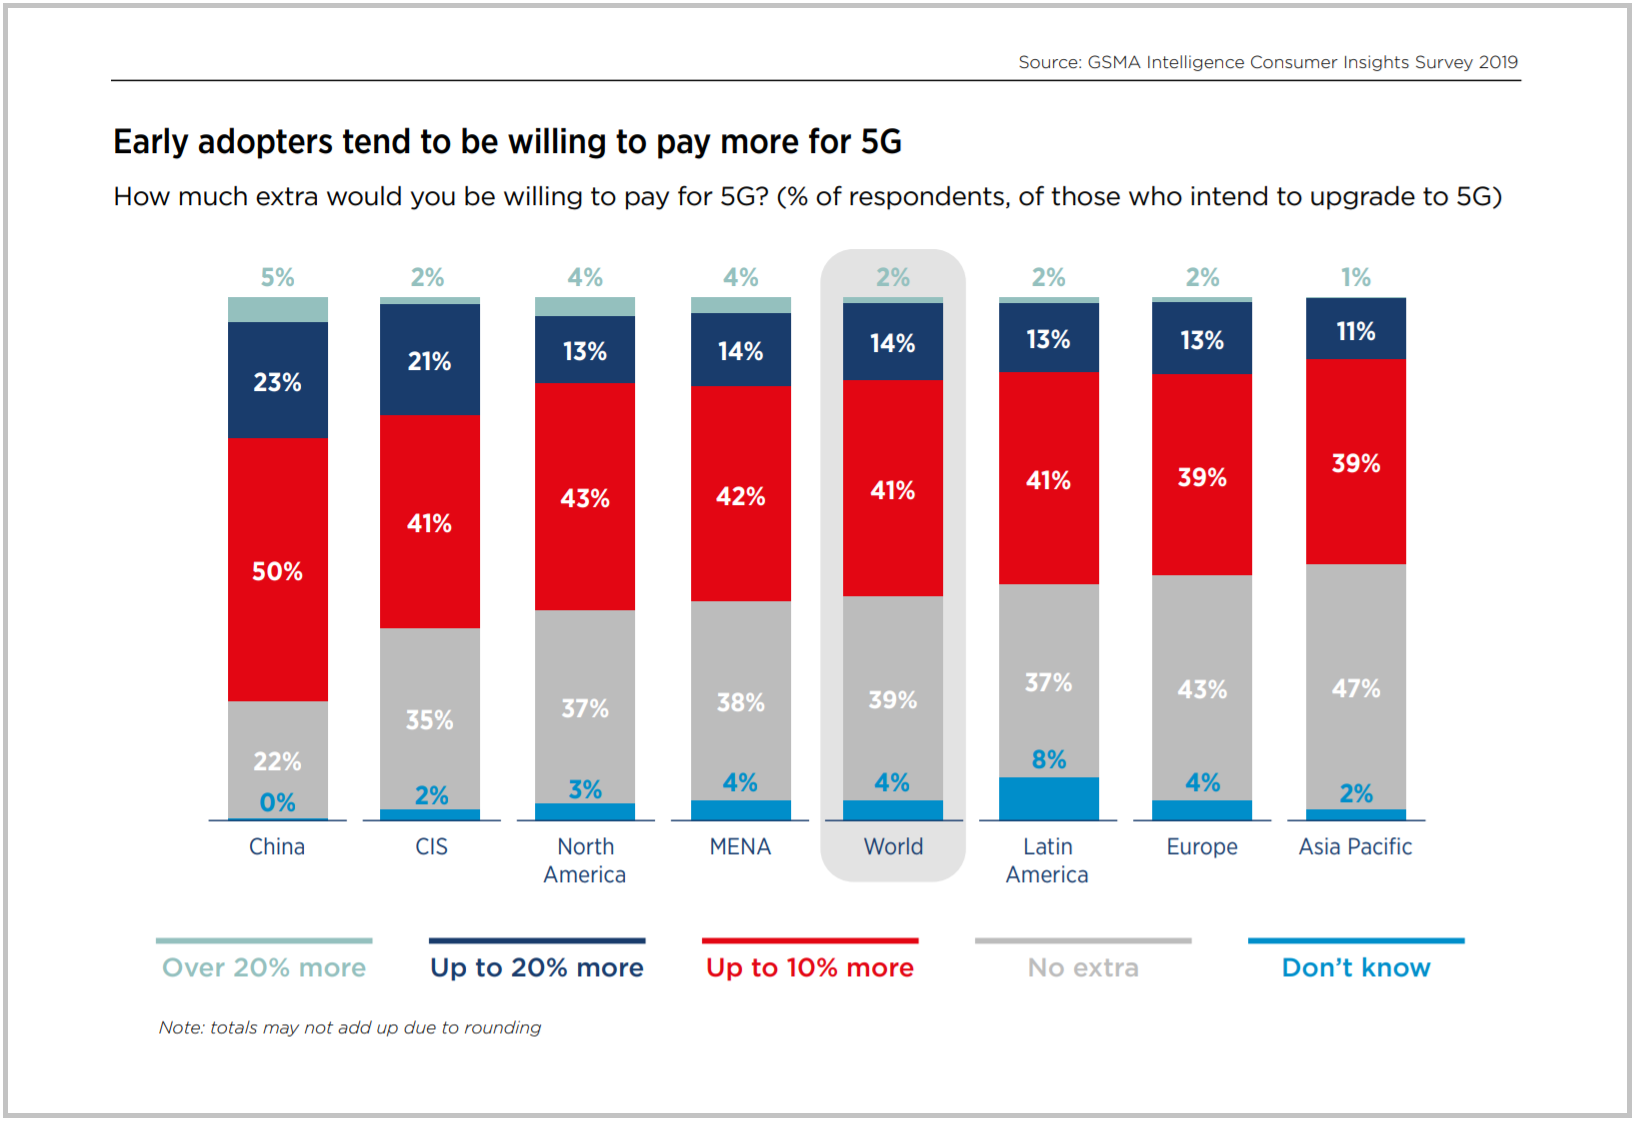 Early adopters tend to be willing to pay more for 5G